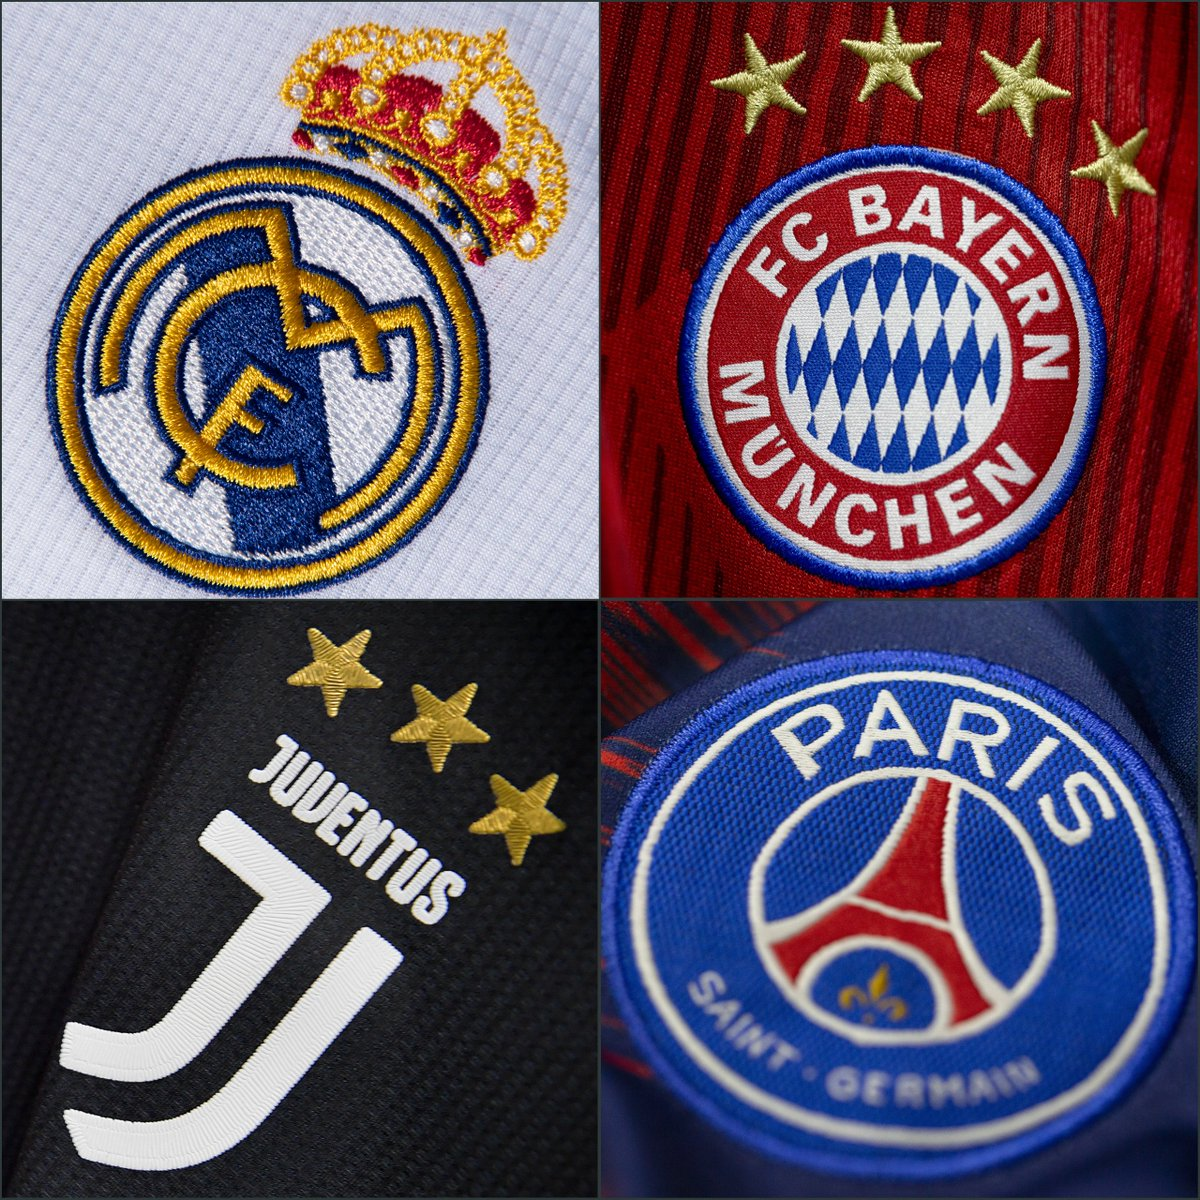 🇪🇸🇩🇪🇮🇹🇫🇷 Four domestic champions...  🏆 Most likely to triumph in Europe too?  #UCL https://t.co/DX1KwDodOZ